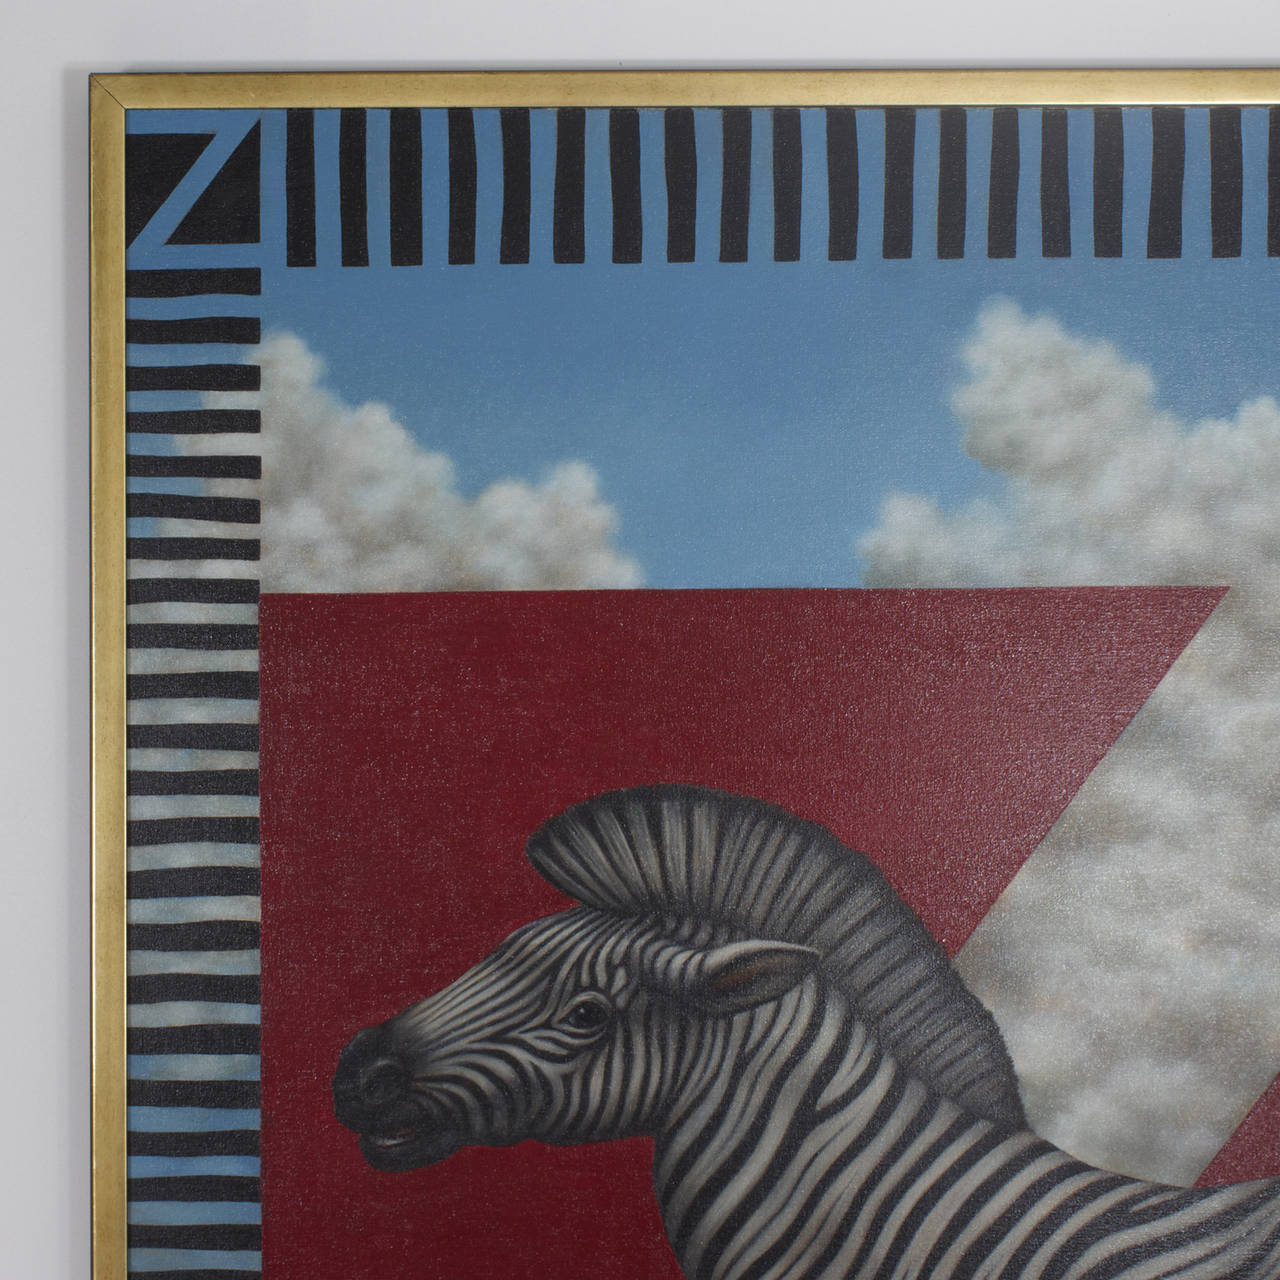 A large modern zebra painting on canvas. There are several references to the letter Z, seen in the upper corners and on the back the painting which is titled Z is 4. The shape of the clouded blue sky holds yet another reference. The red triangles